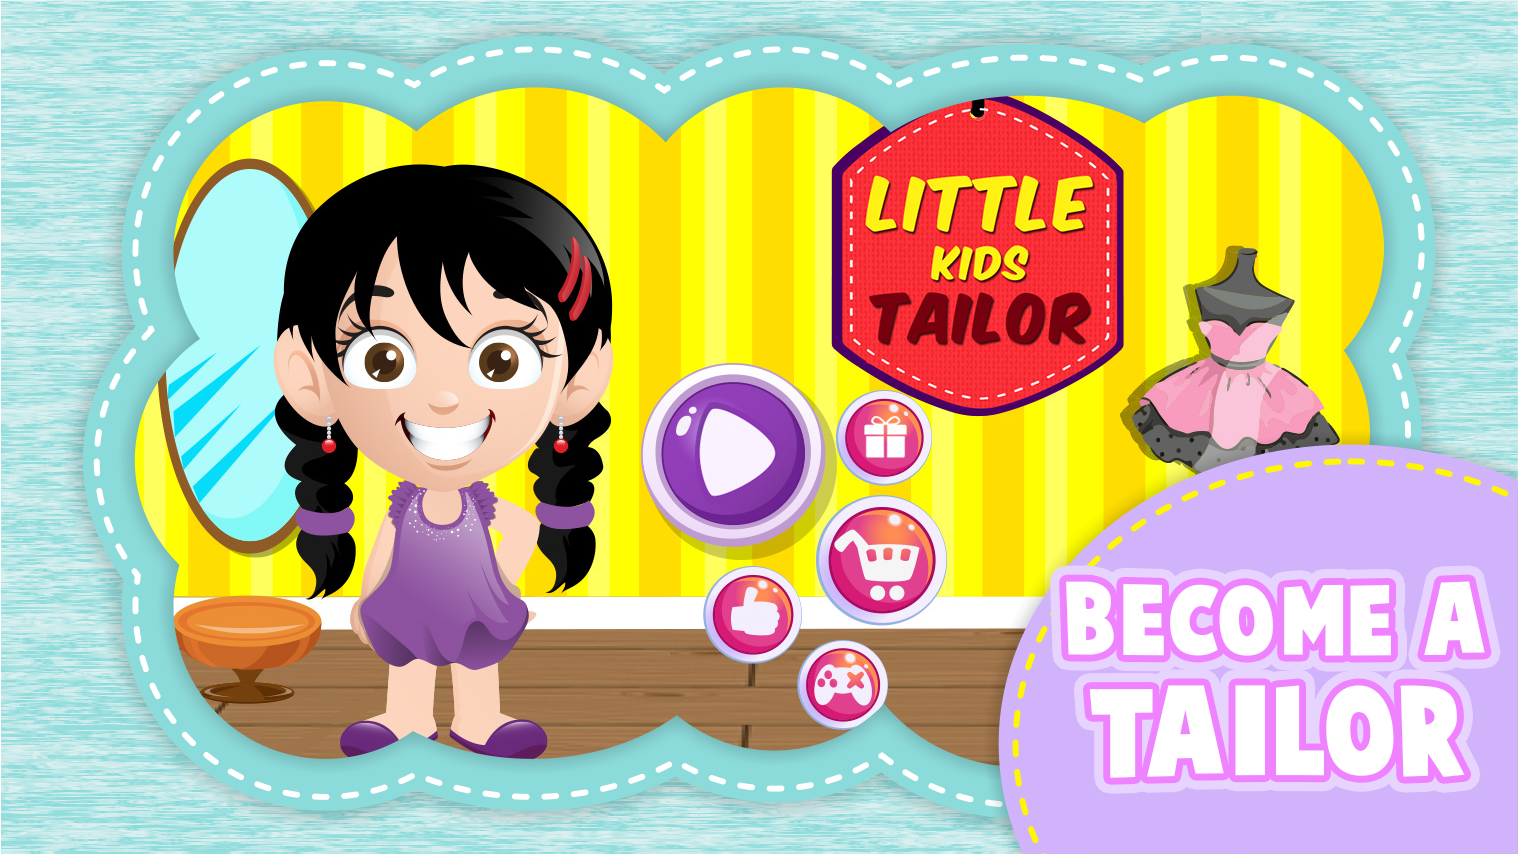 Sedikit Anak Anak Tailor Fun Apl Android Di Google Play